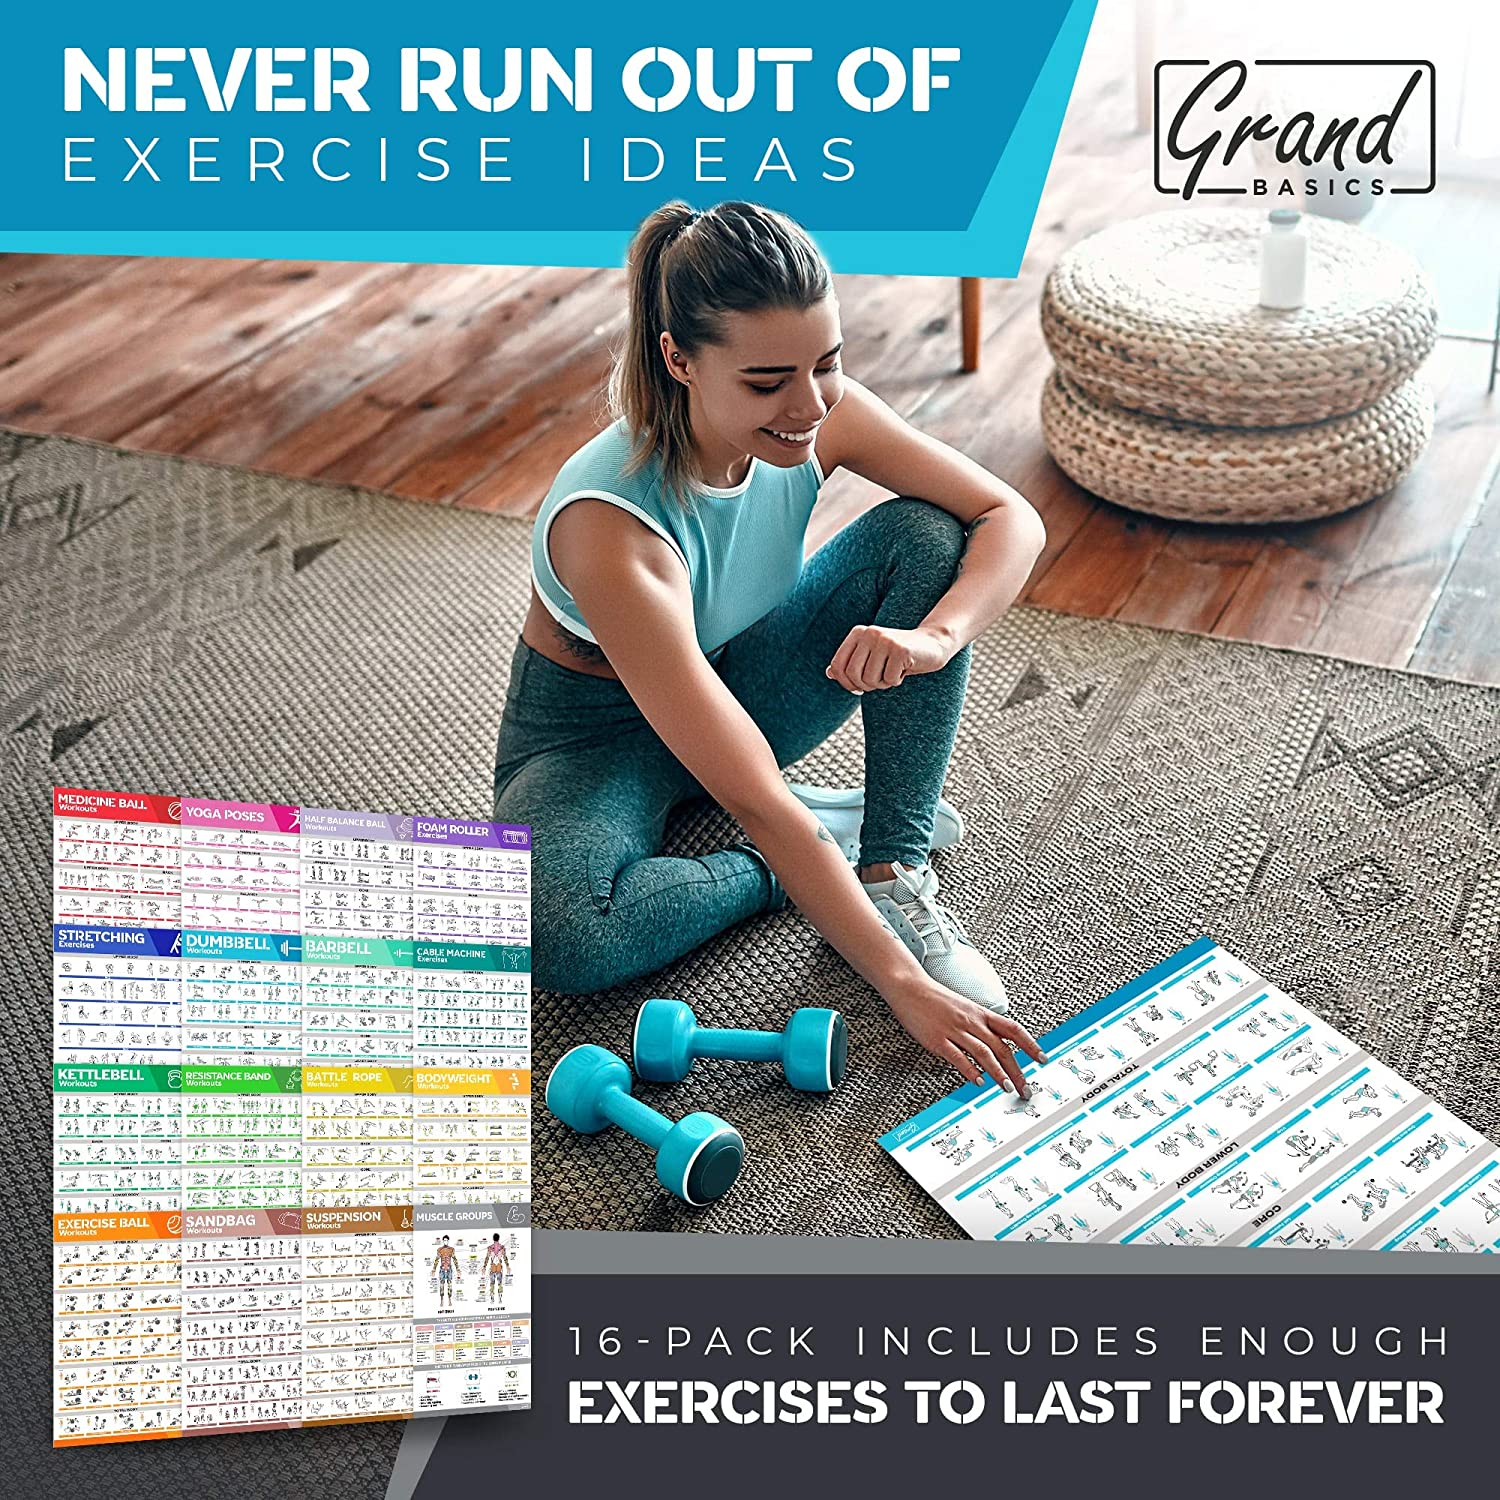 Stretching /& More Fitness Gym Posters 16-PACK Laminated Large Workout Poster Set Perfect Workout Posters For Home Gym Resistance Band Dumbbell Exercise Charts Incl Yoga Poses Kettlebell